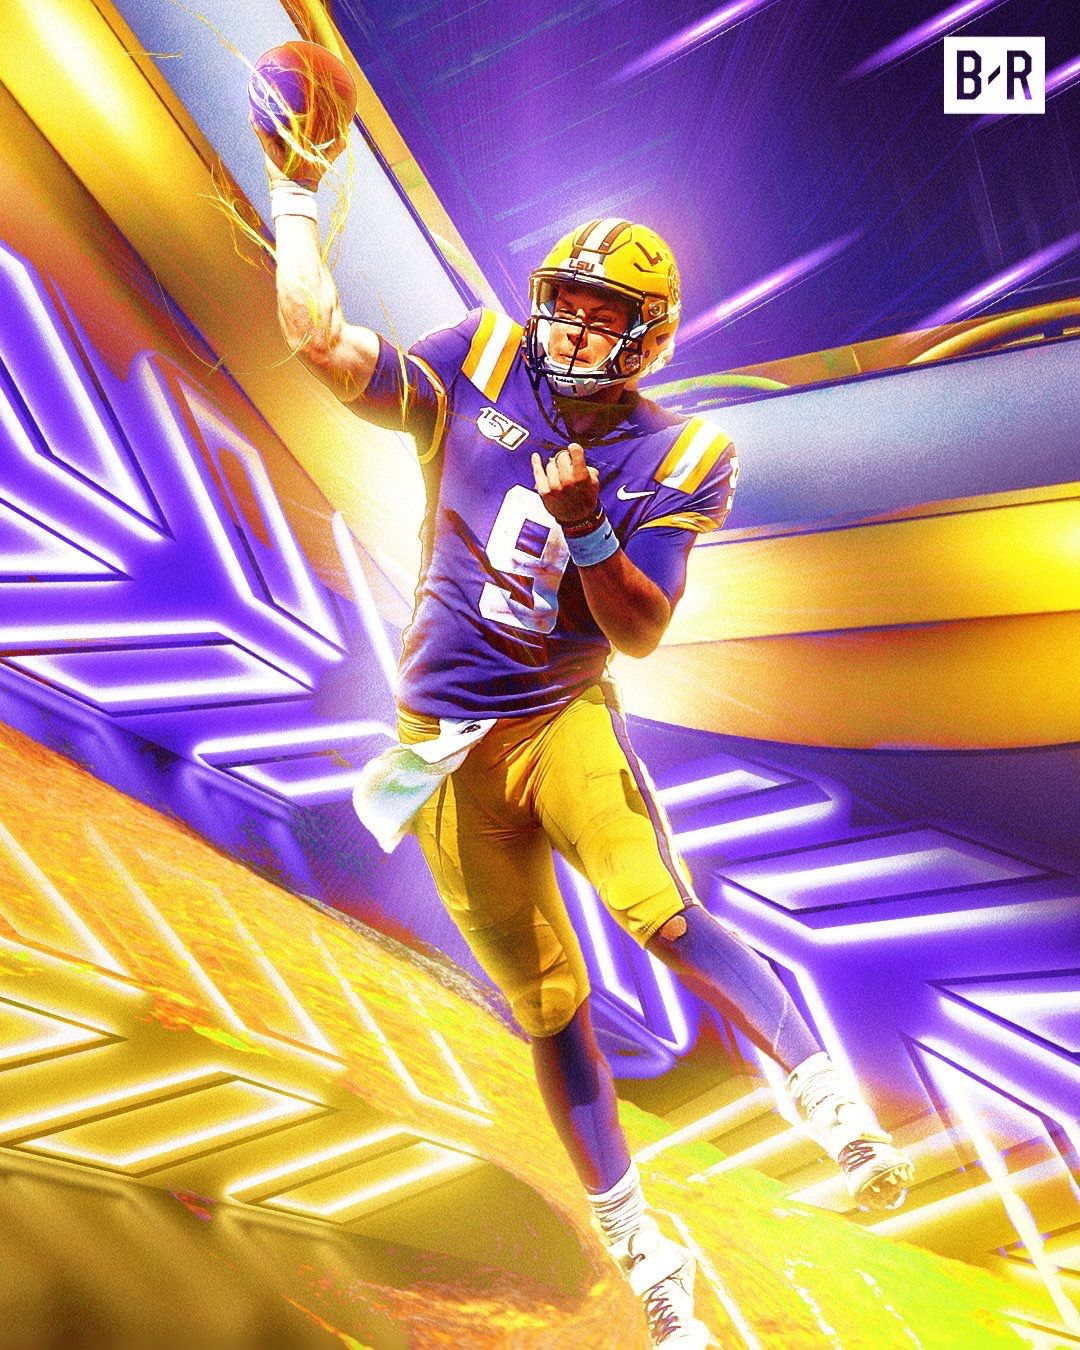 Joe Burrow Lsu Lsu Tigers Football Lsu Tigers Lsu